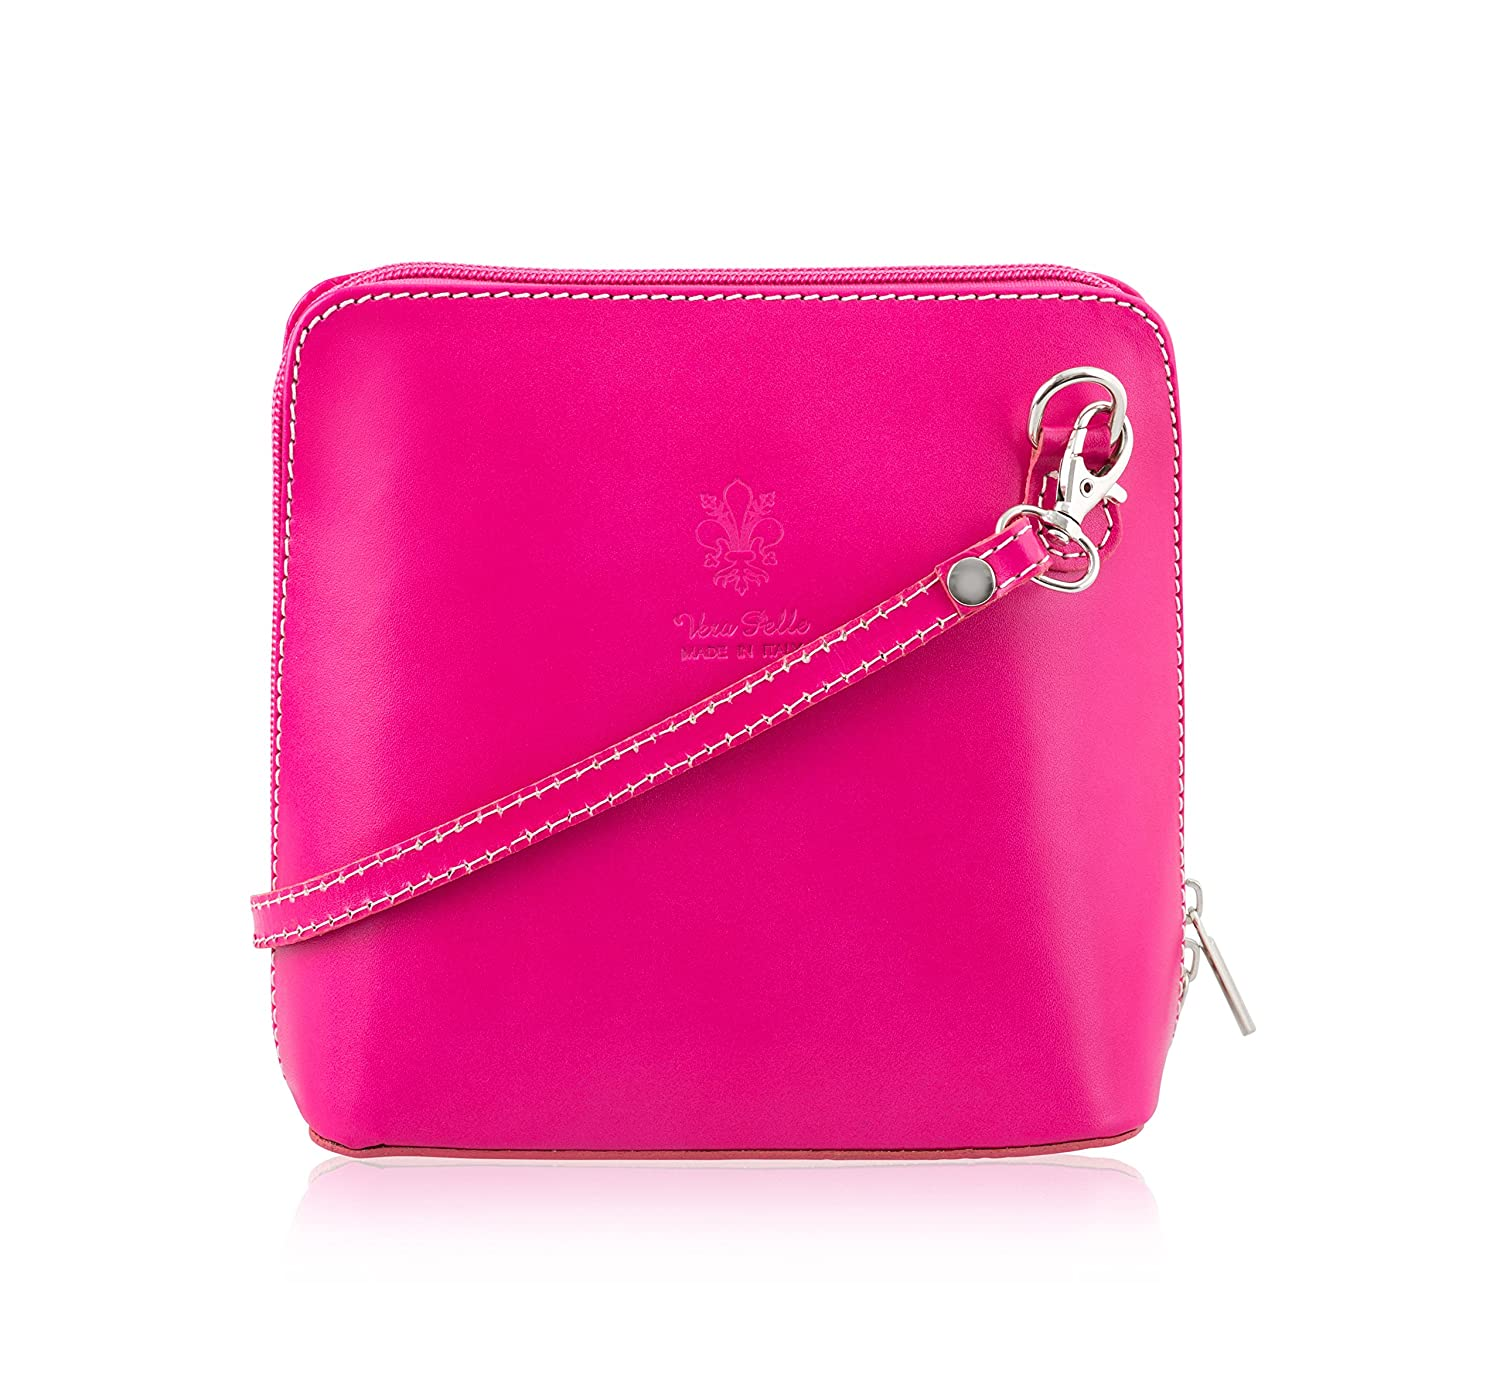 100% Italian Leather Handmade Small/Mini Cross Body/Shoulder HandBag/Clubbing Bag- Design 2018 in Pink - Made in Italy Mayfair Cashmere